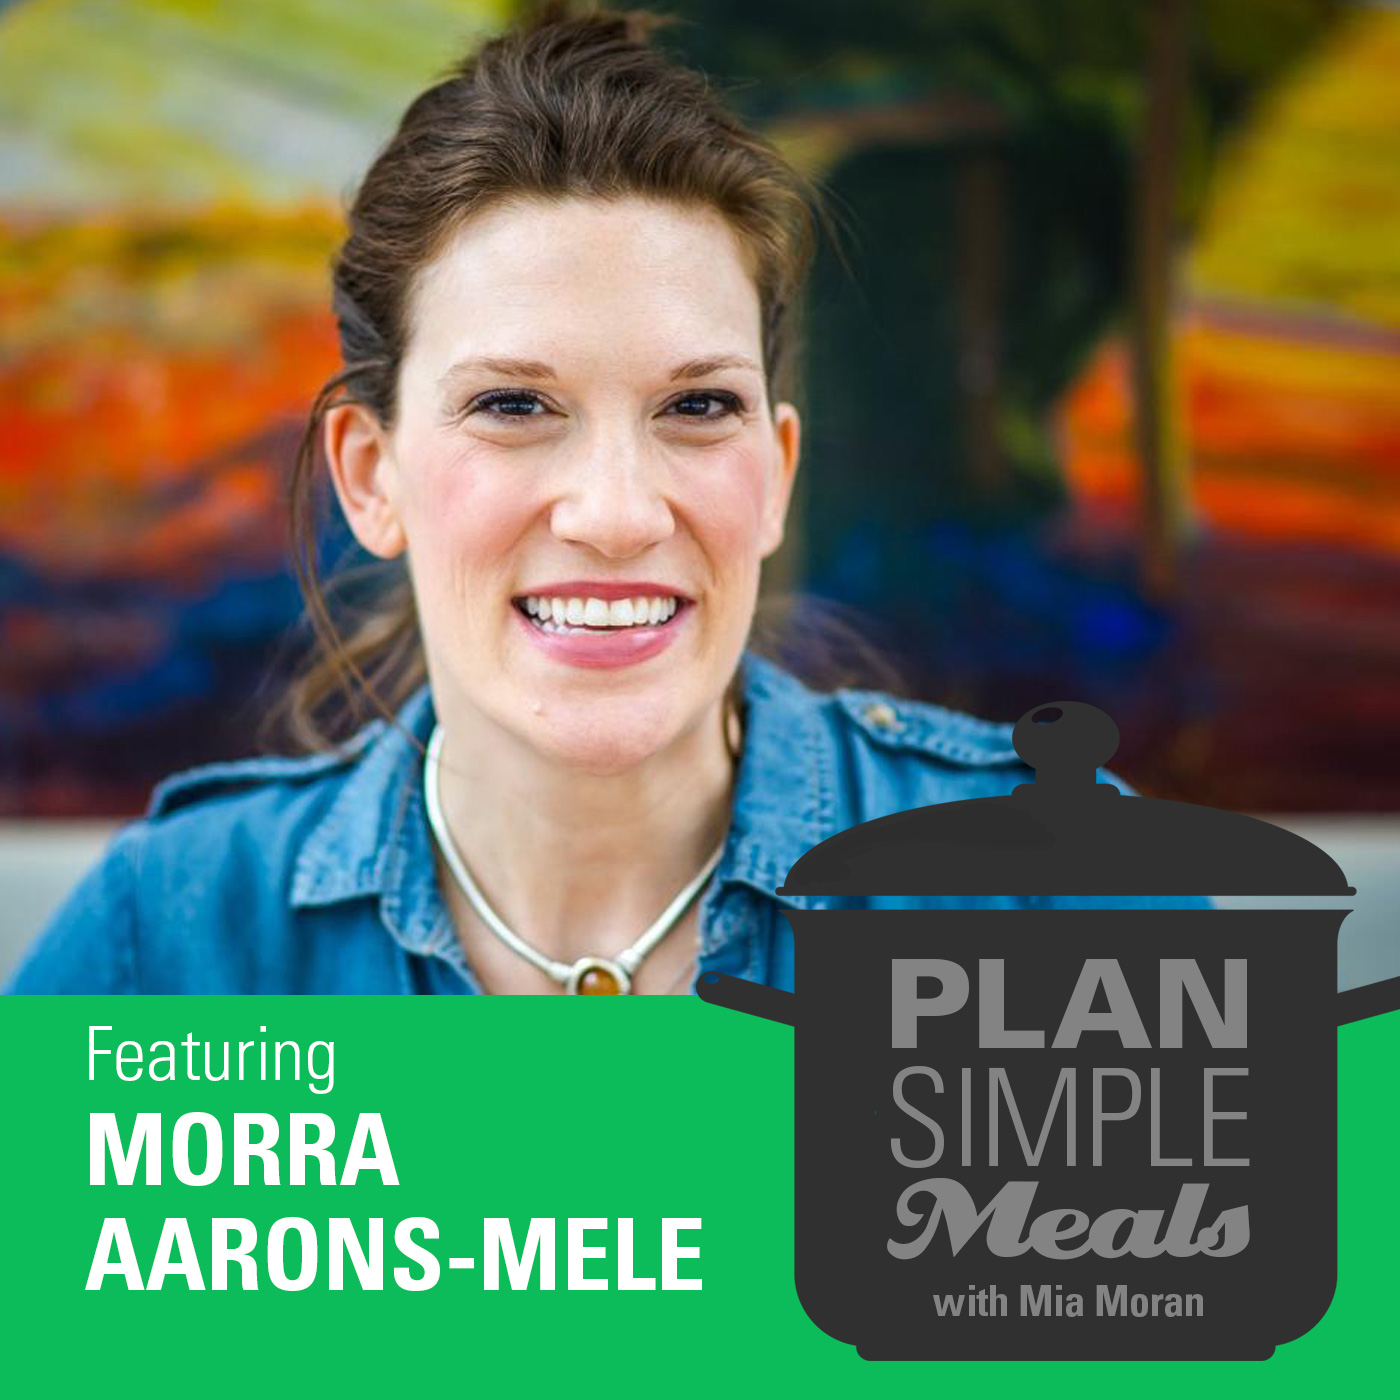 Treat Your Calendar Seriously With Morra Aarons Mele